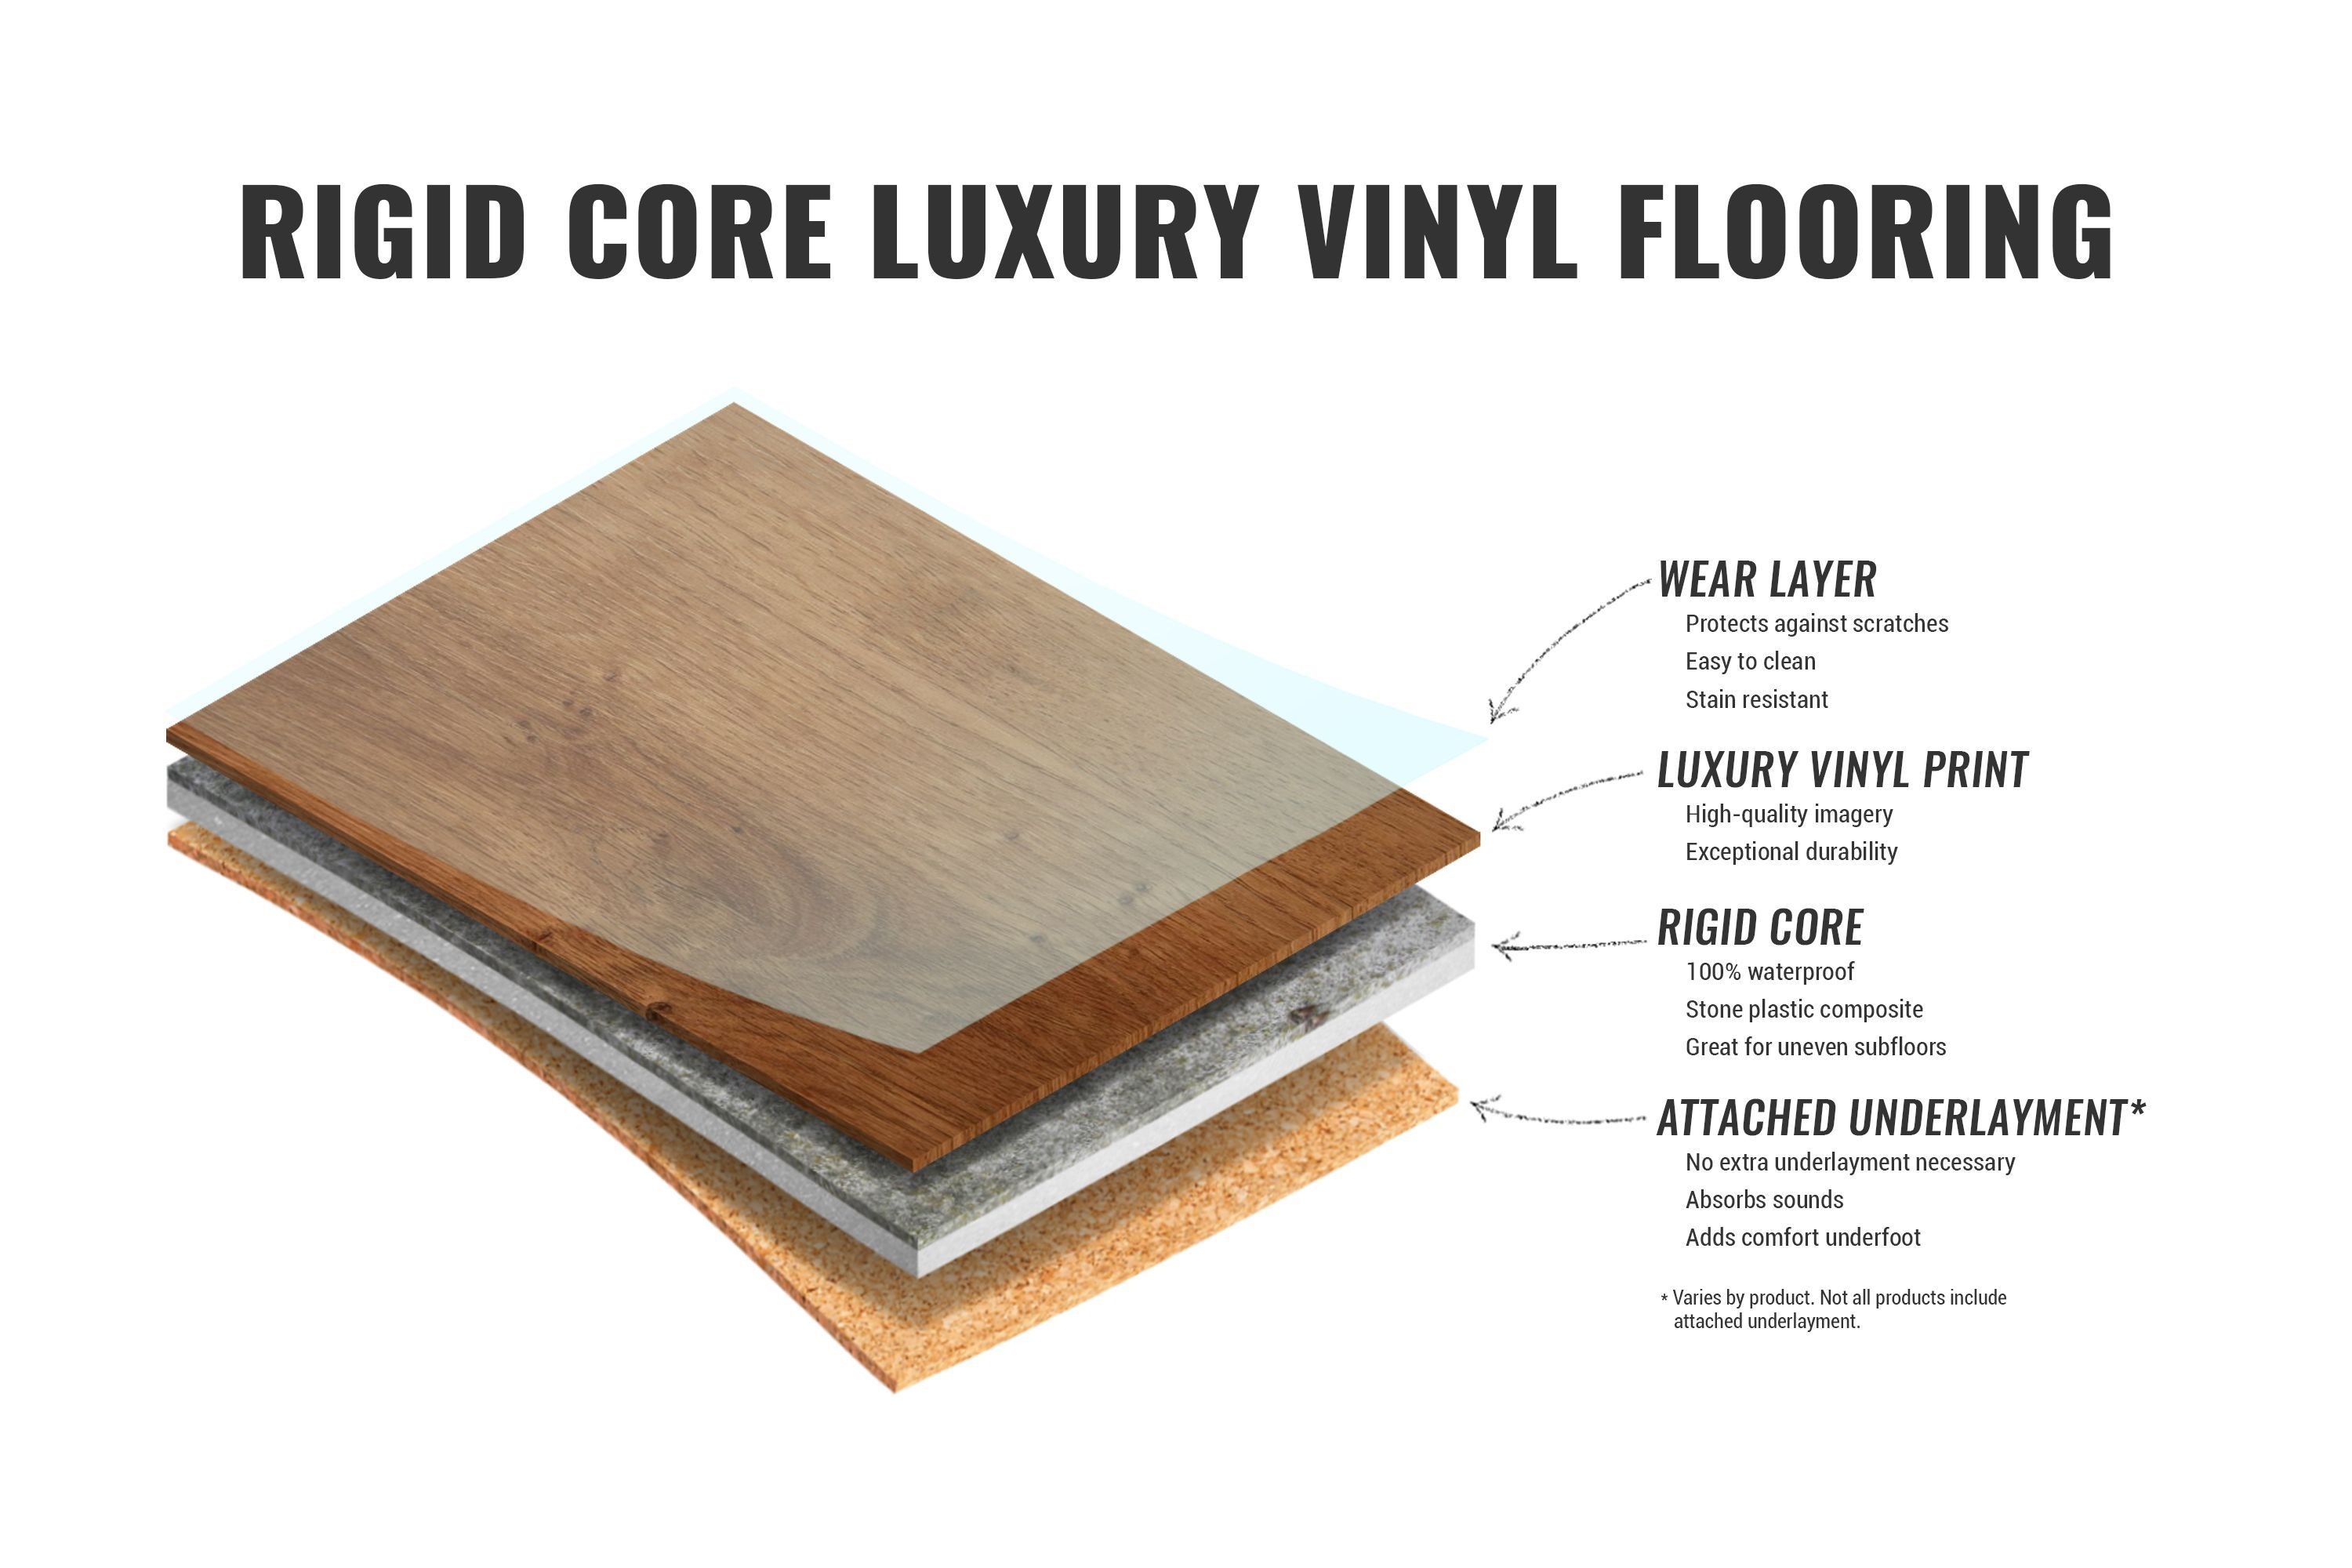 How To Clean Waterproof Rigid Core Vinyl Plank Flooring